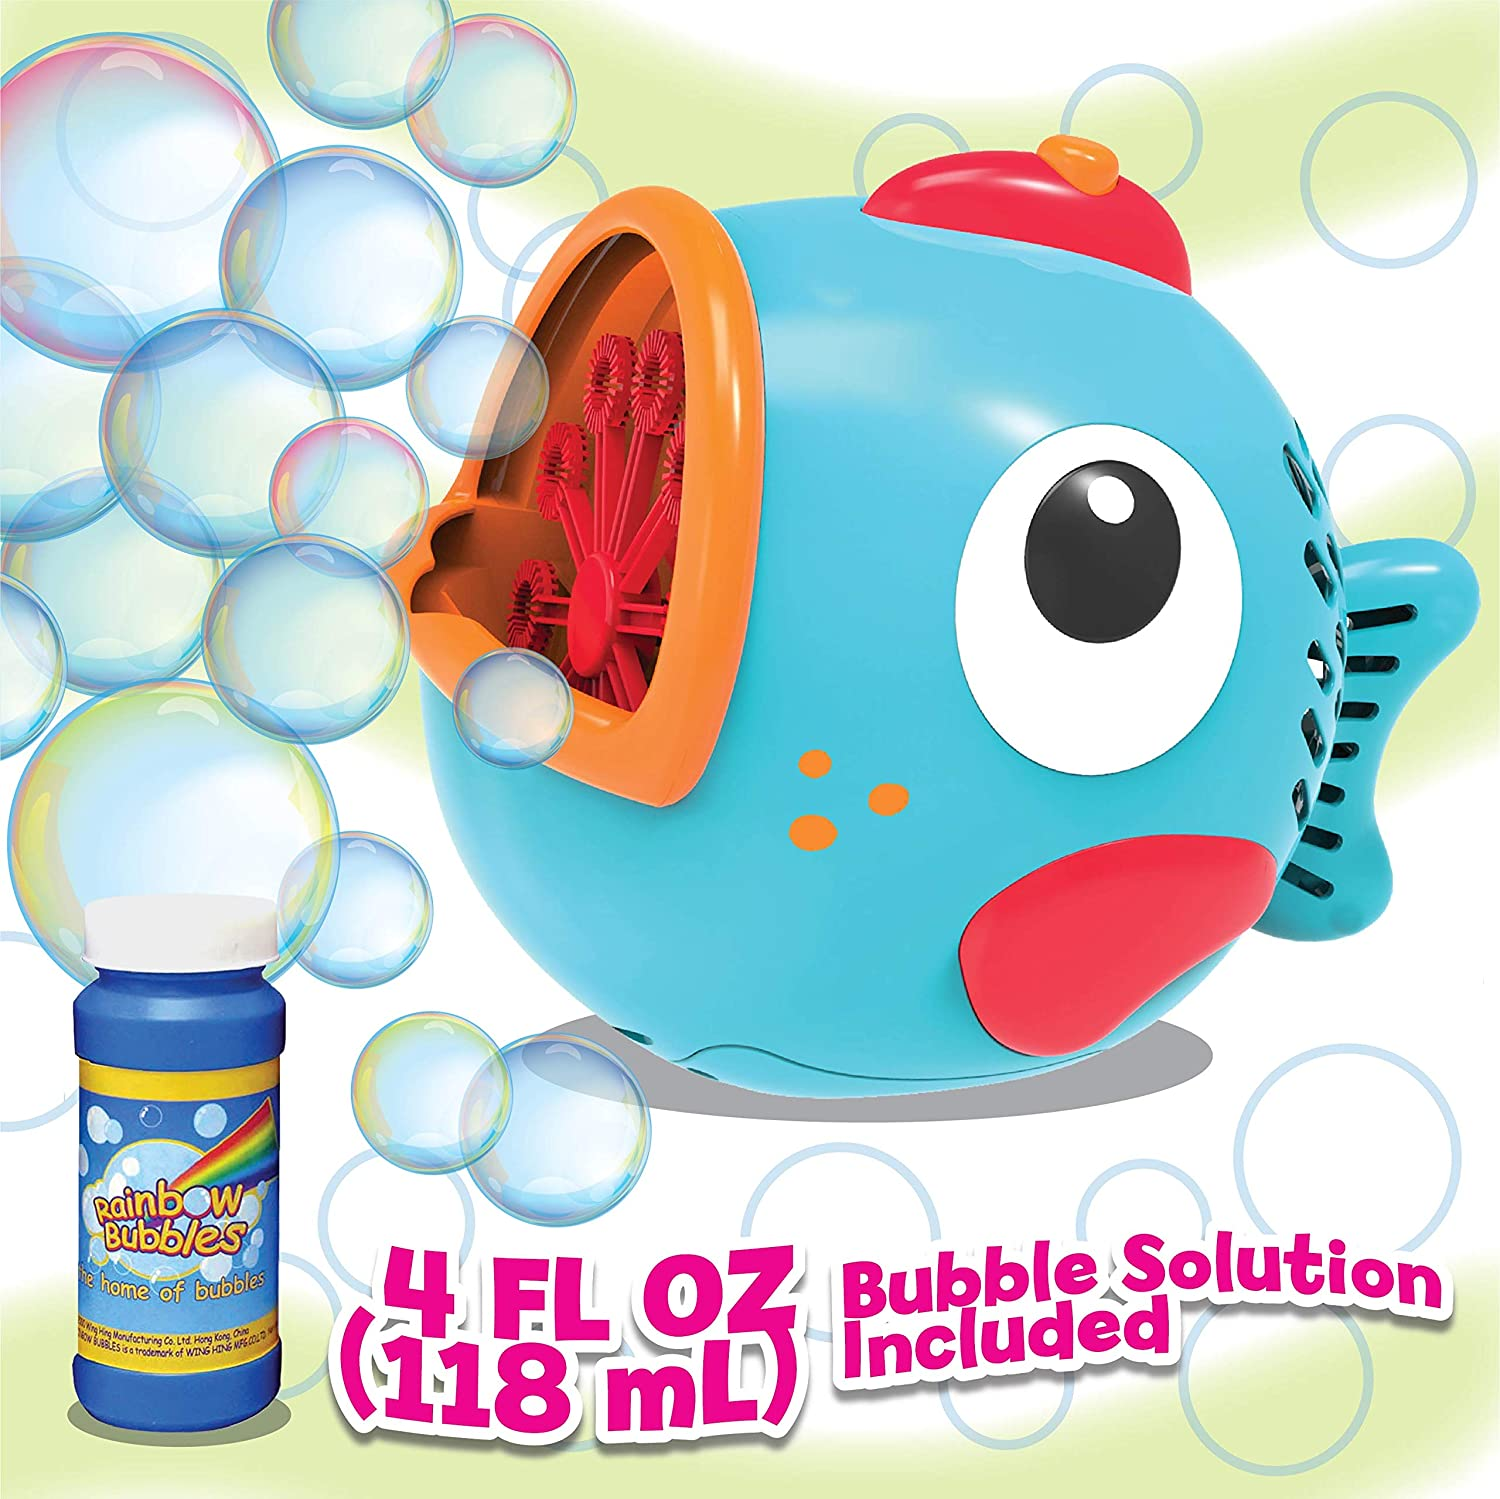 PROUDLY PRESENTS BY RAINBOW BUBBLES Fish Bubble Machine (Automatic Bubble Blower w/ 1 Bubble Solution in Gift Box), Party Hurray